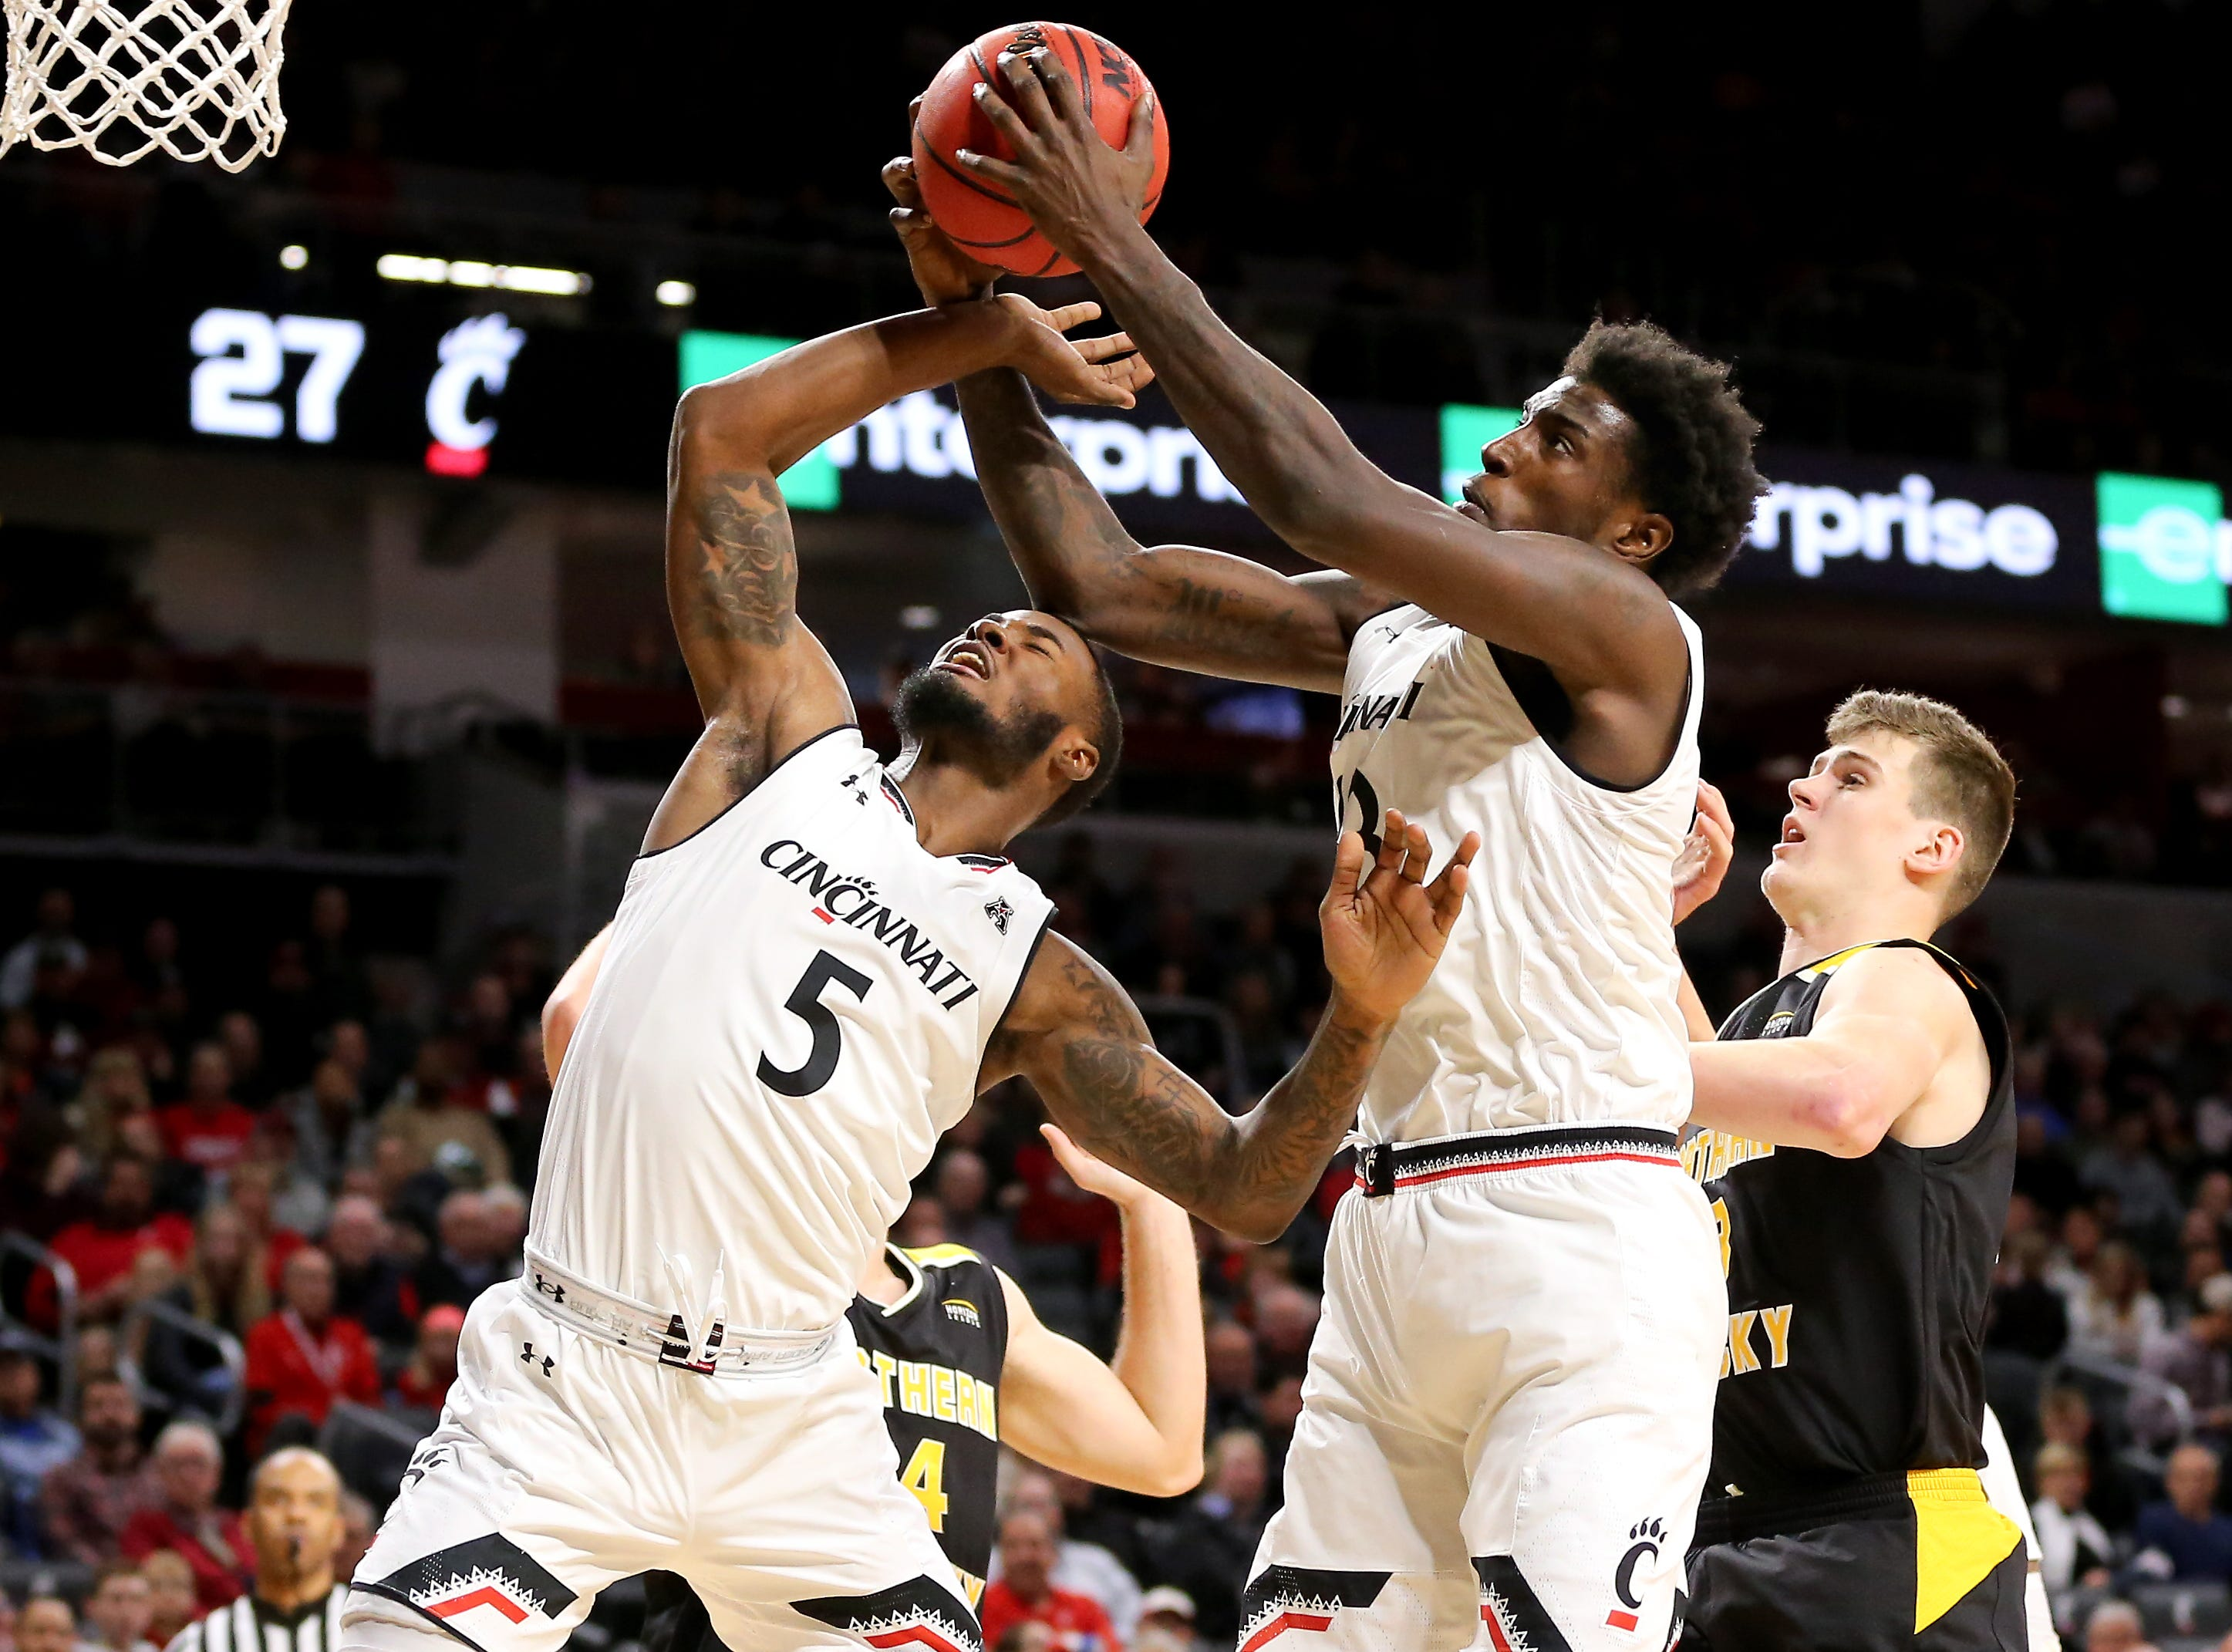 Cincinnati Bearcats center Nysier Brooks (33) rebounds the ball in the first half of an NCAA college basketball against the Northern Kentucky Norse, Tuesday, Dec. 4, 2018, at Fifth Third Arena in Cincinnati.